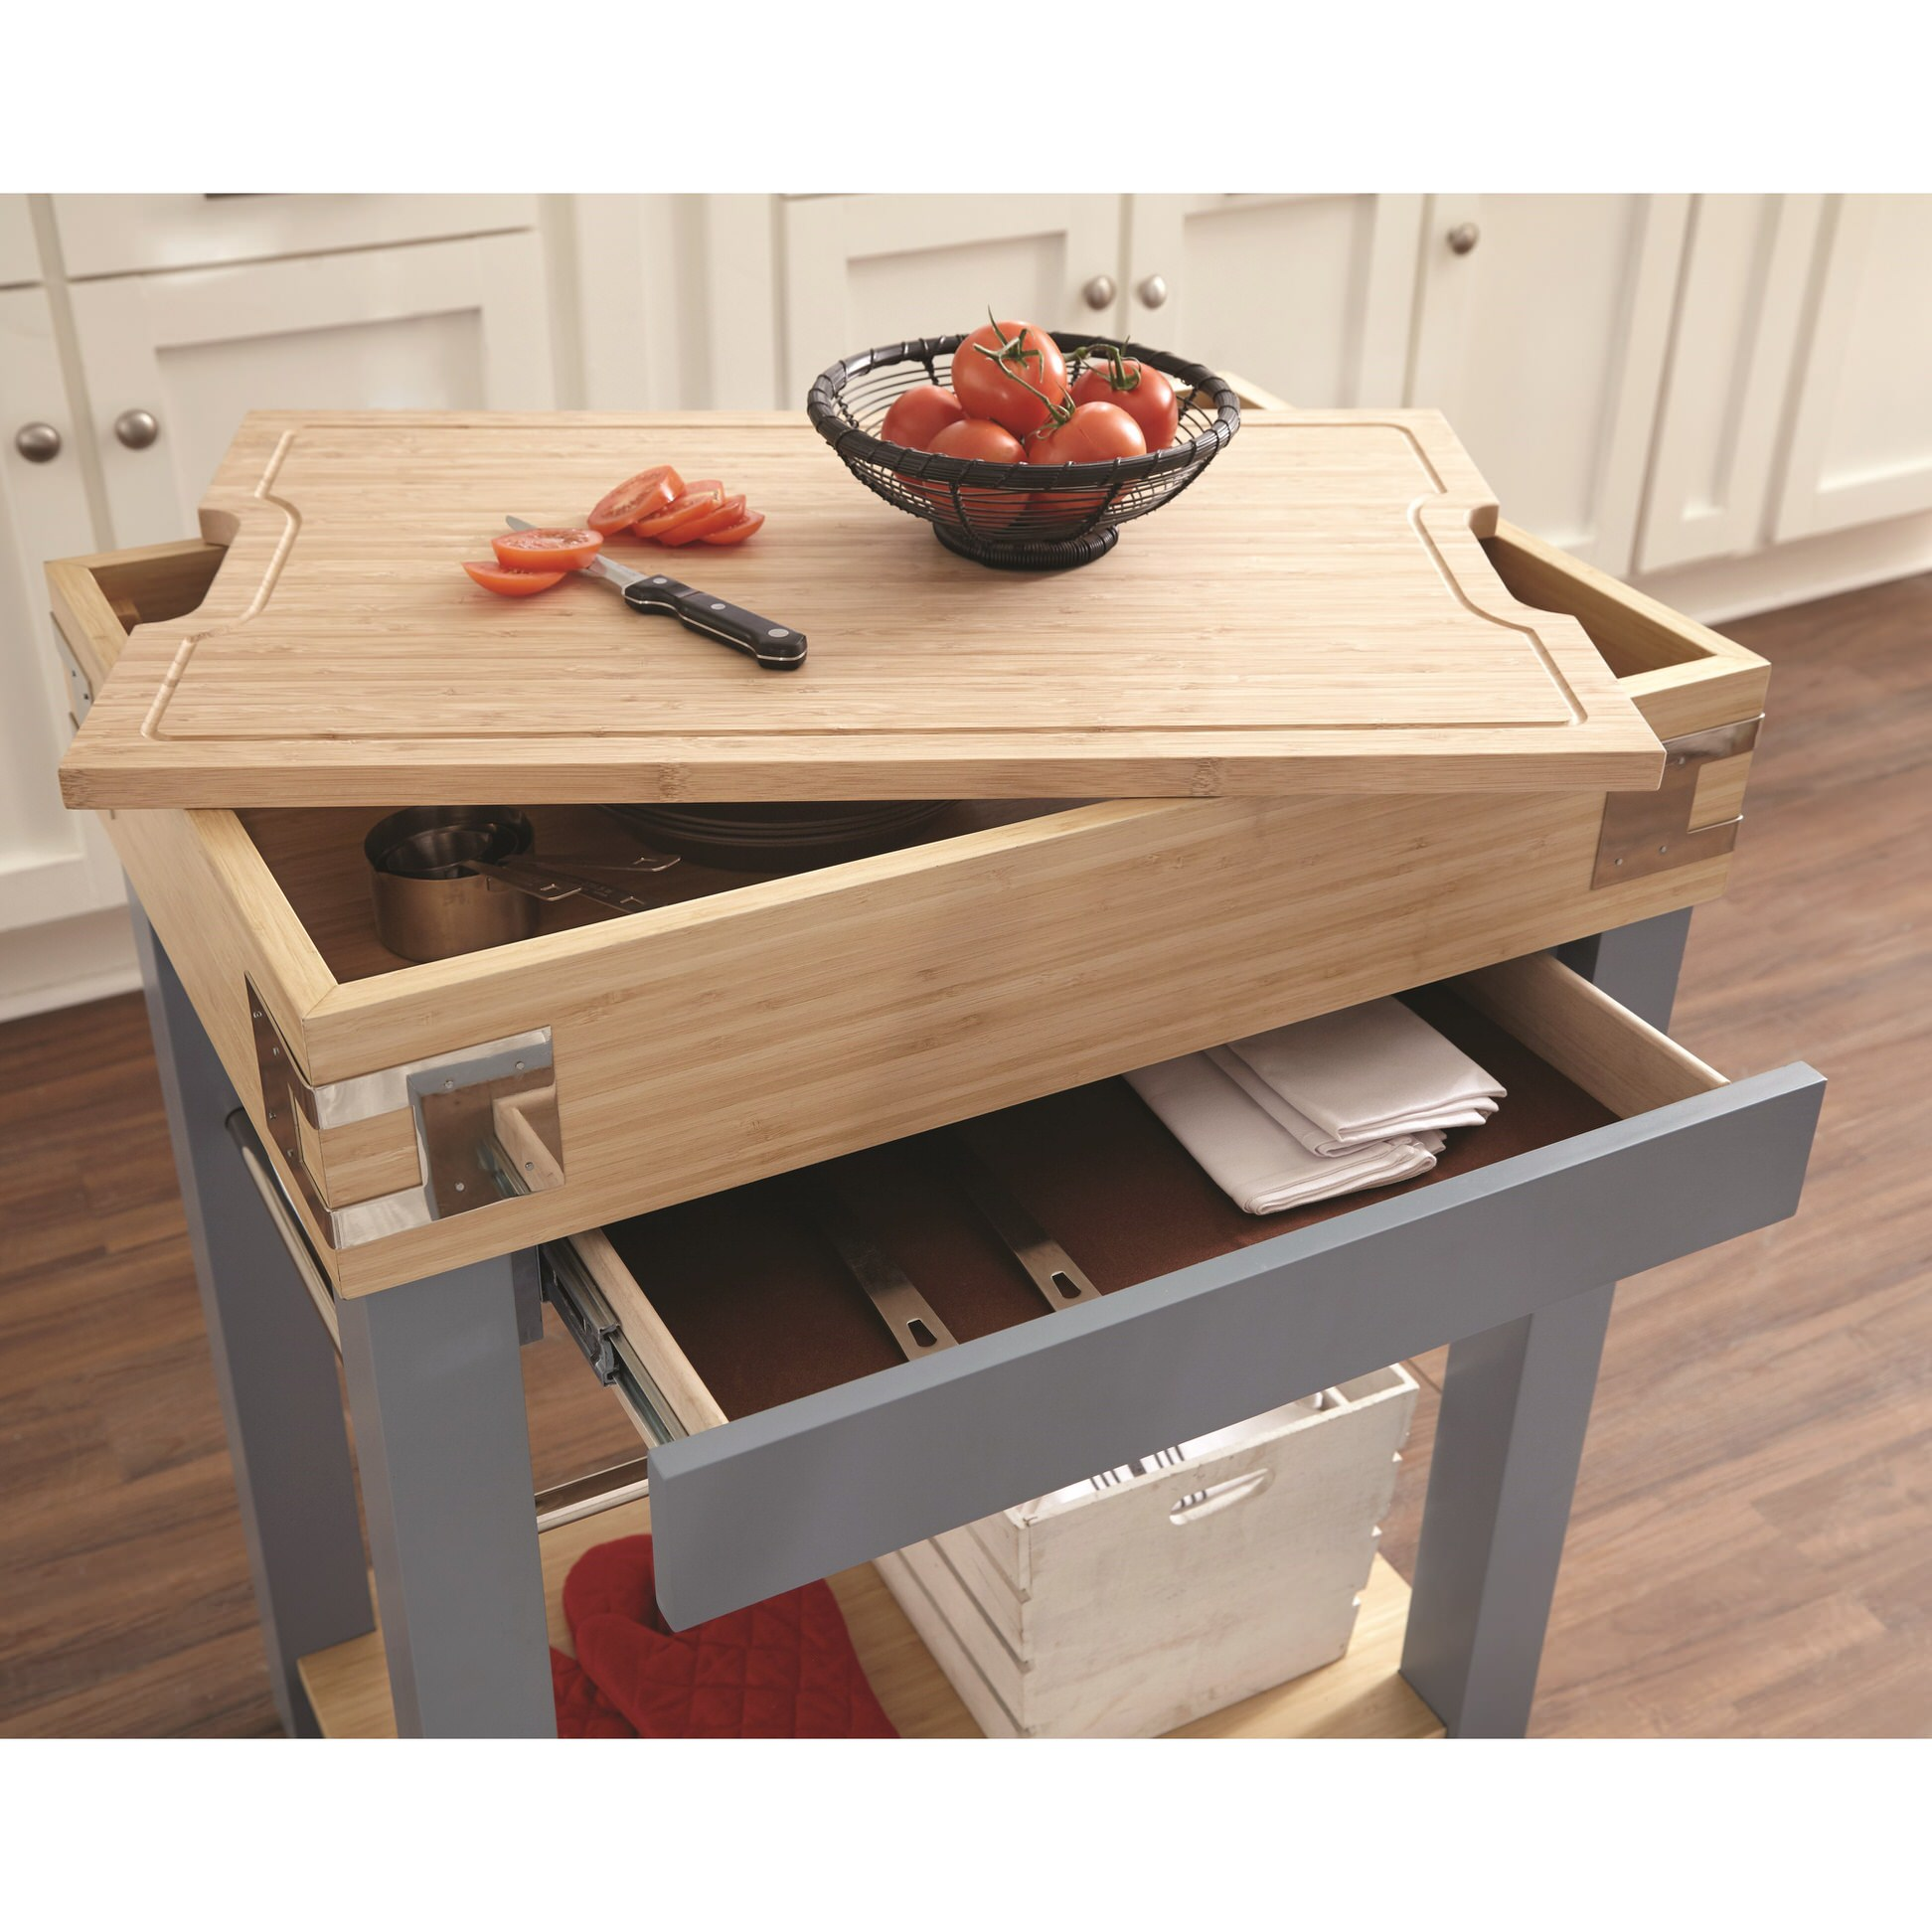 102987 Blue Kitchen Island w/ Removable Cutting Board by ...